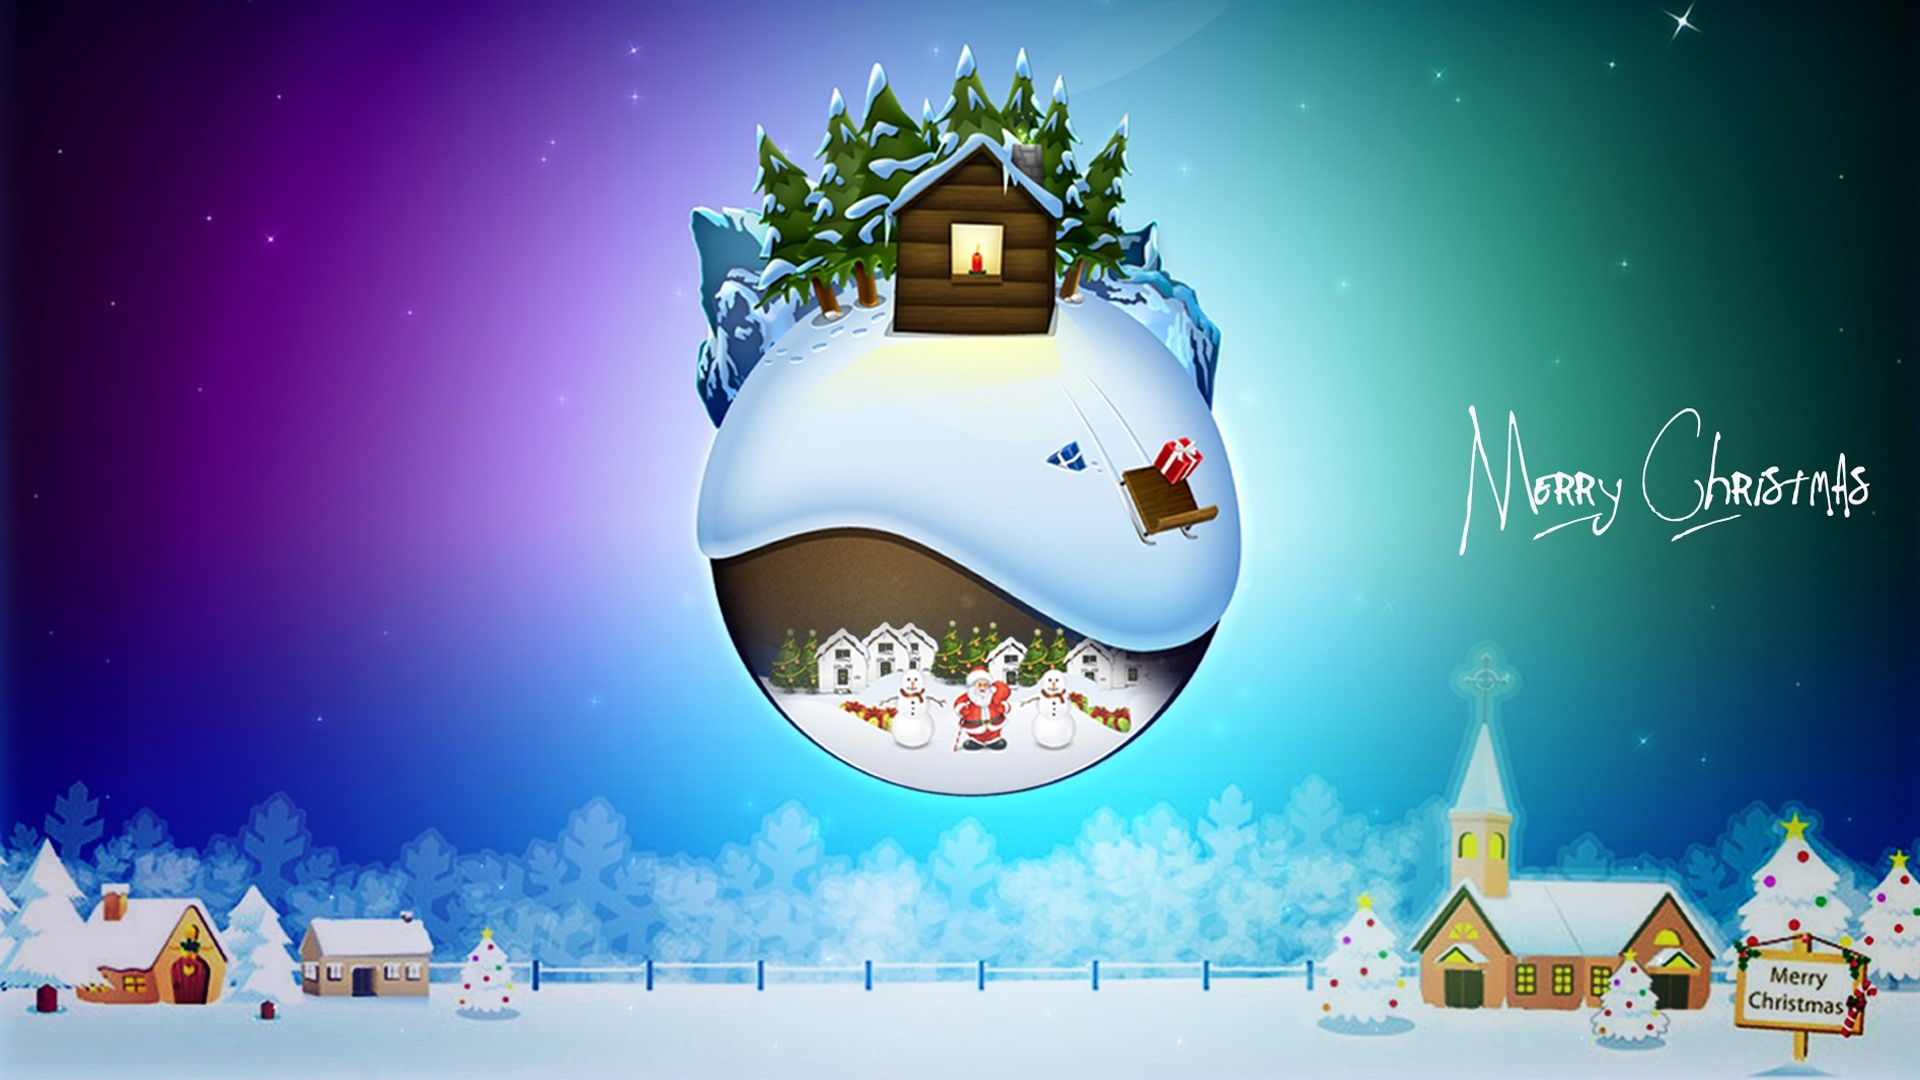 Best Christmas Messages For Share To Friends On Whatsapp And